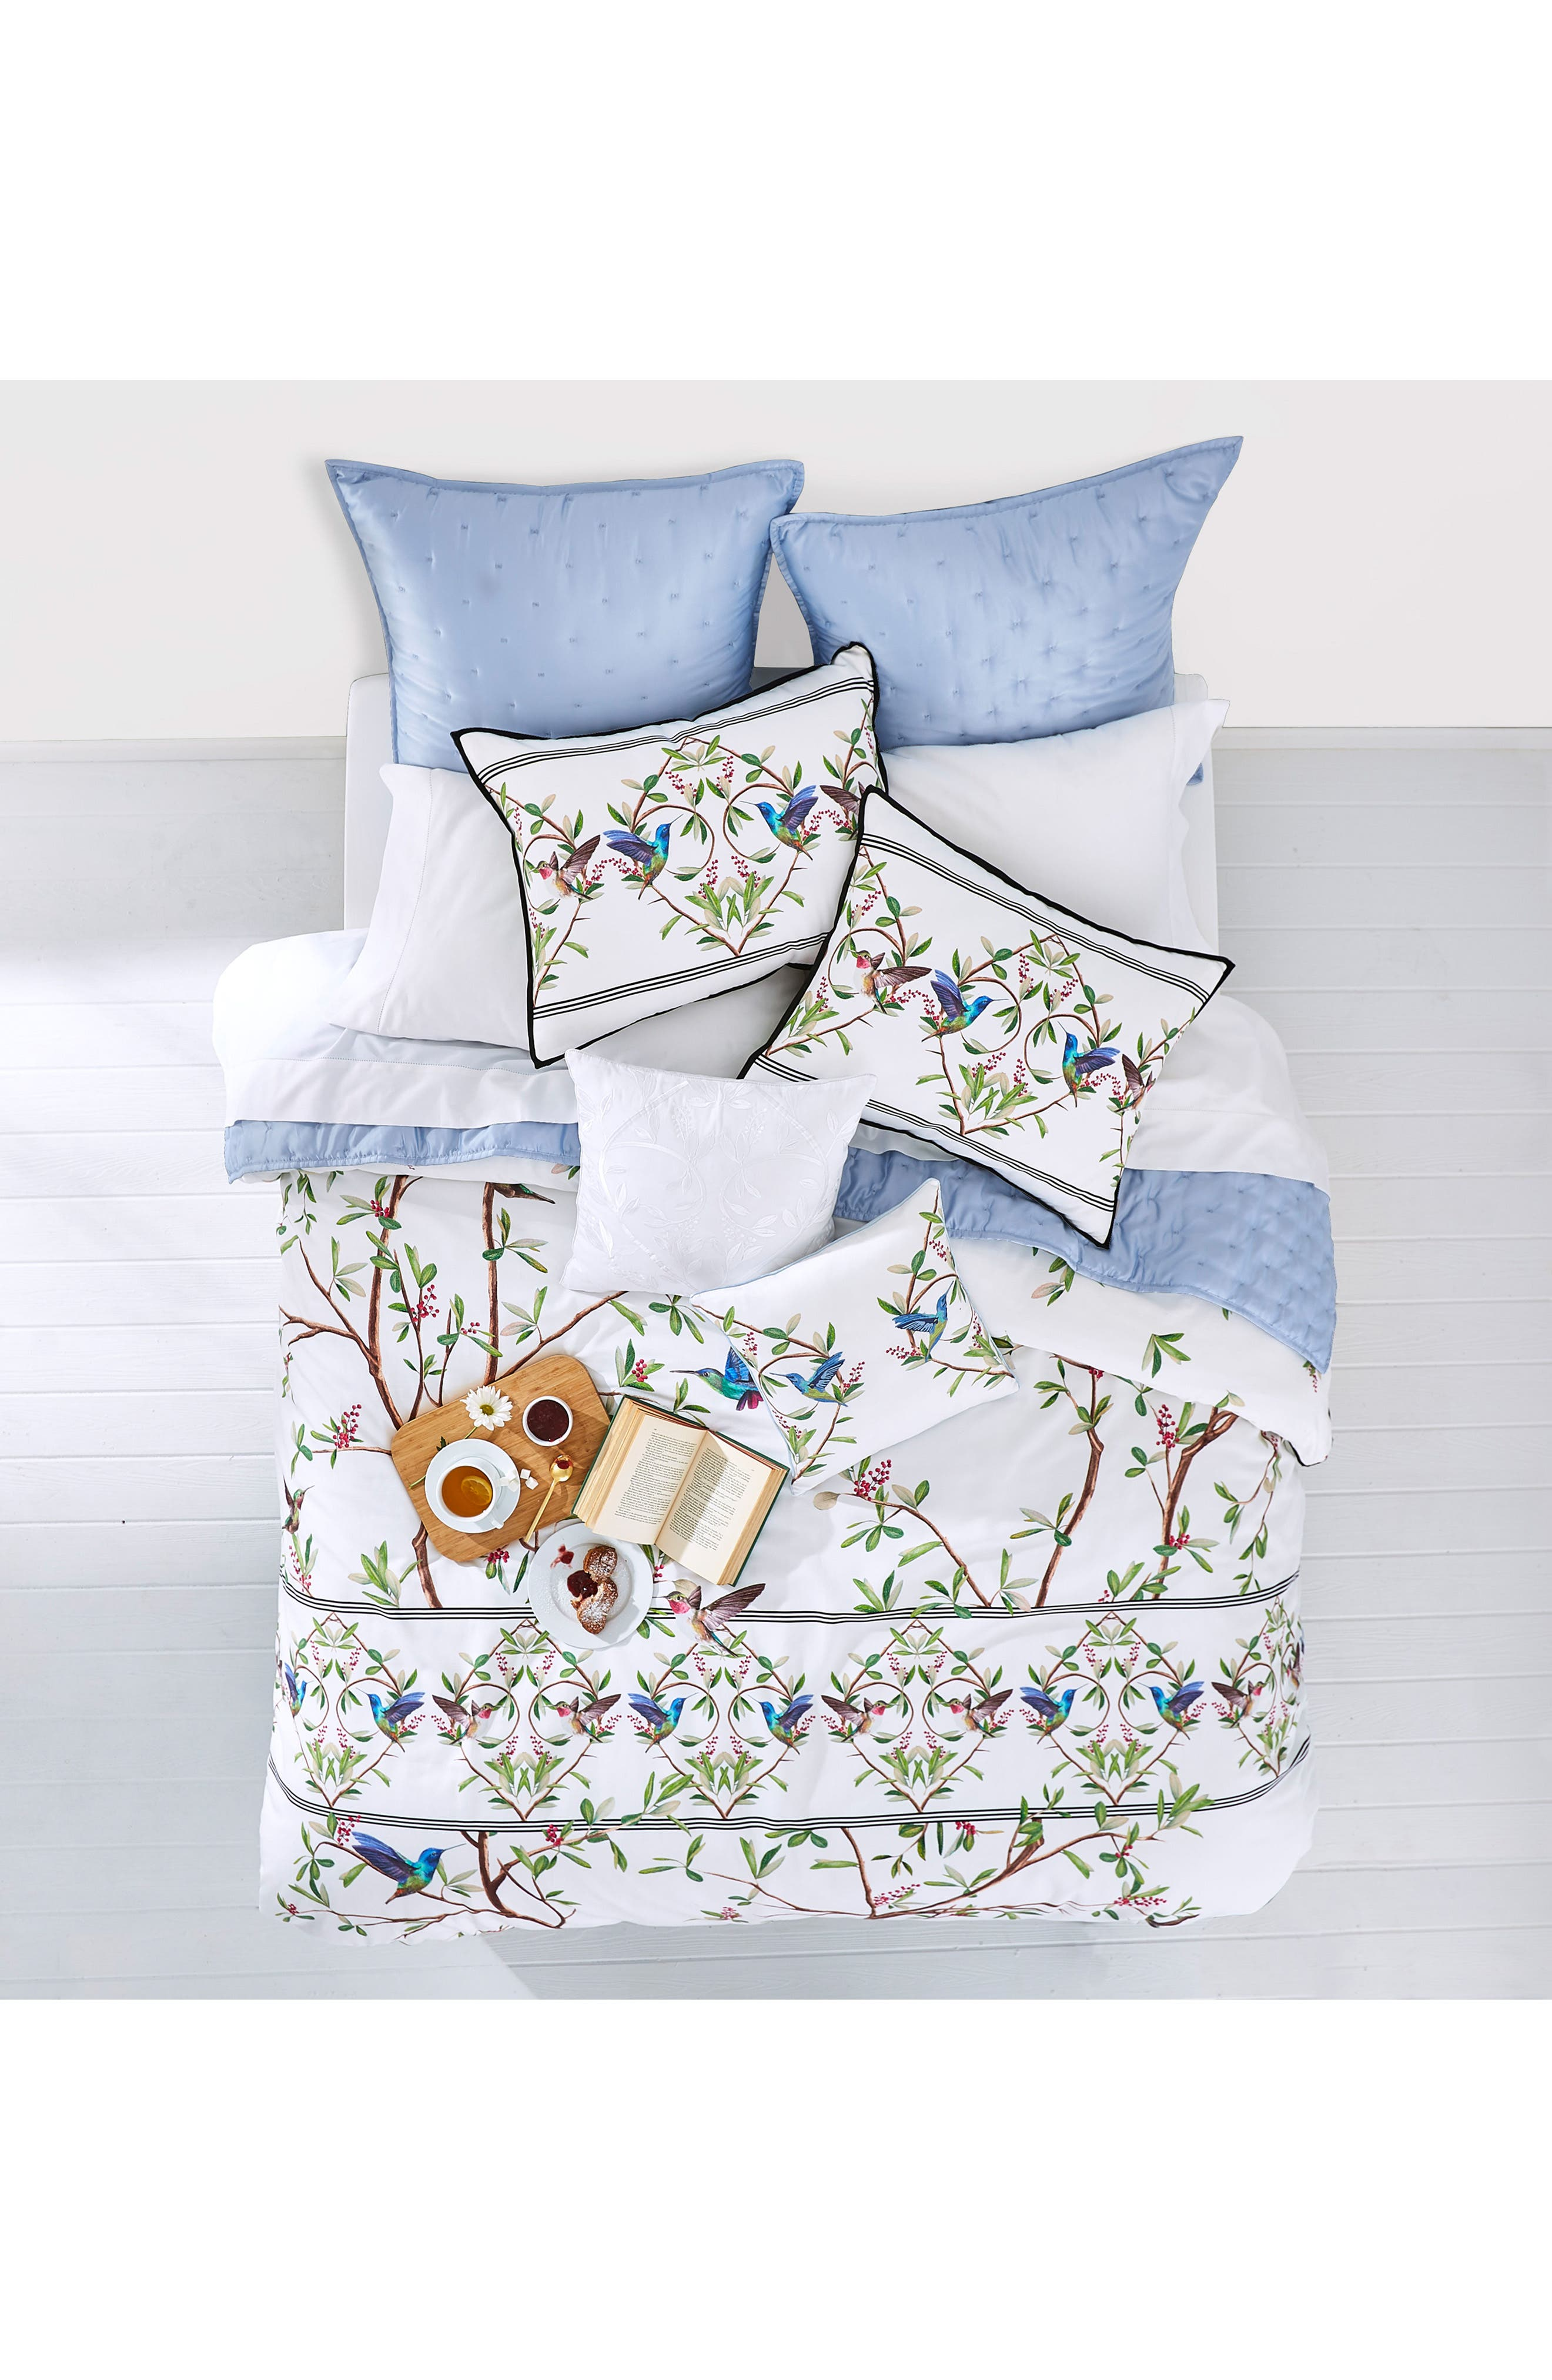 TED BAKER LONDON, Highgrove Comforter & Sham Set, Alternate thumbnail 10, color, WHITE/ MULTI